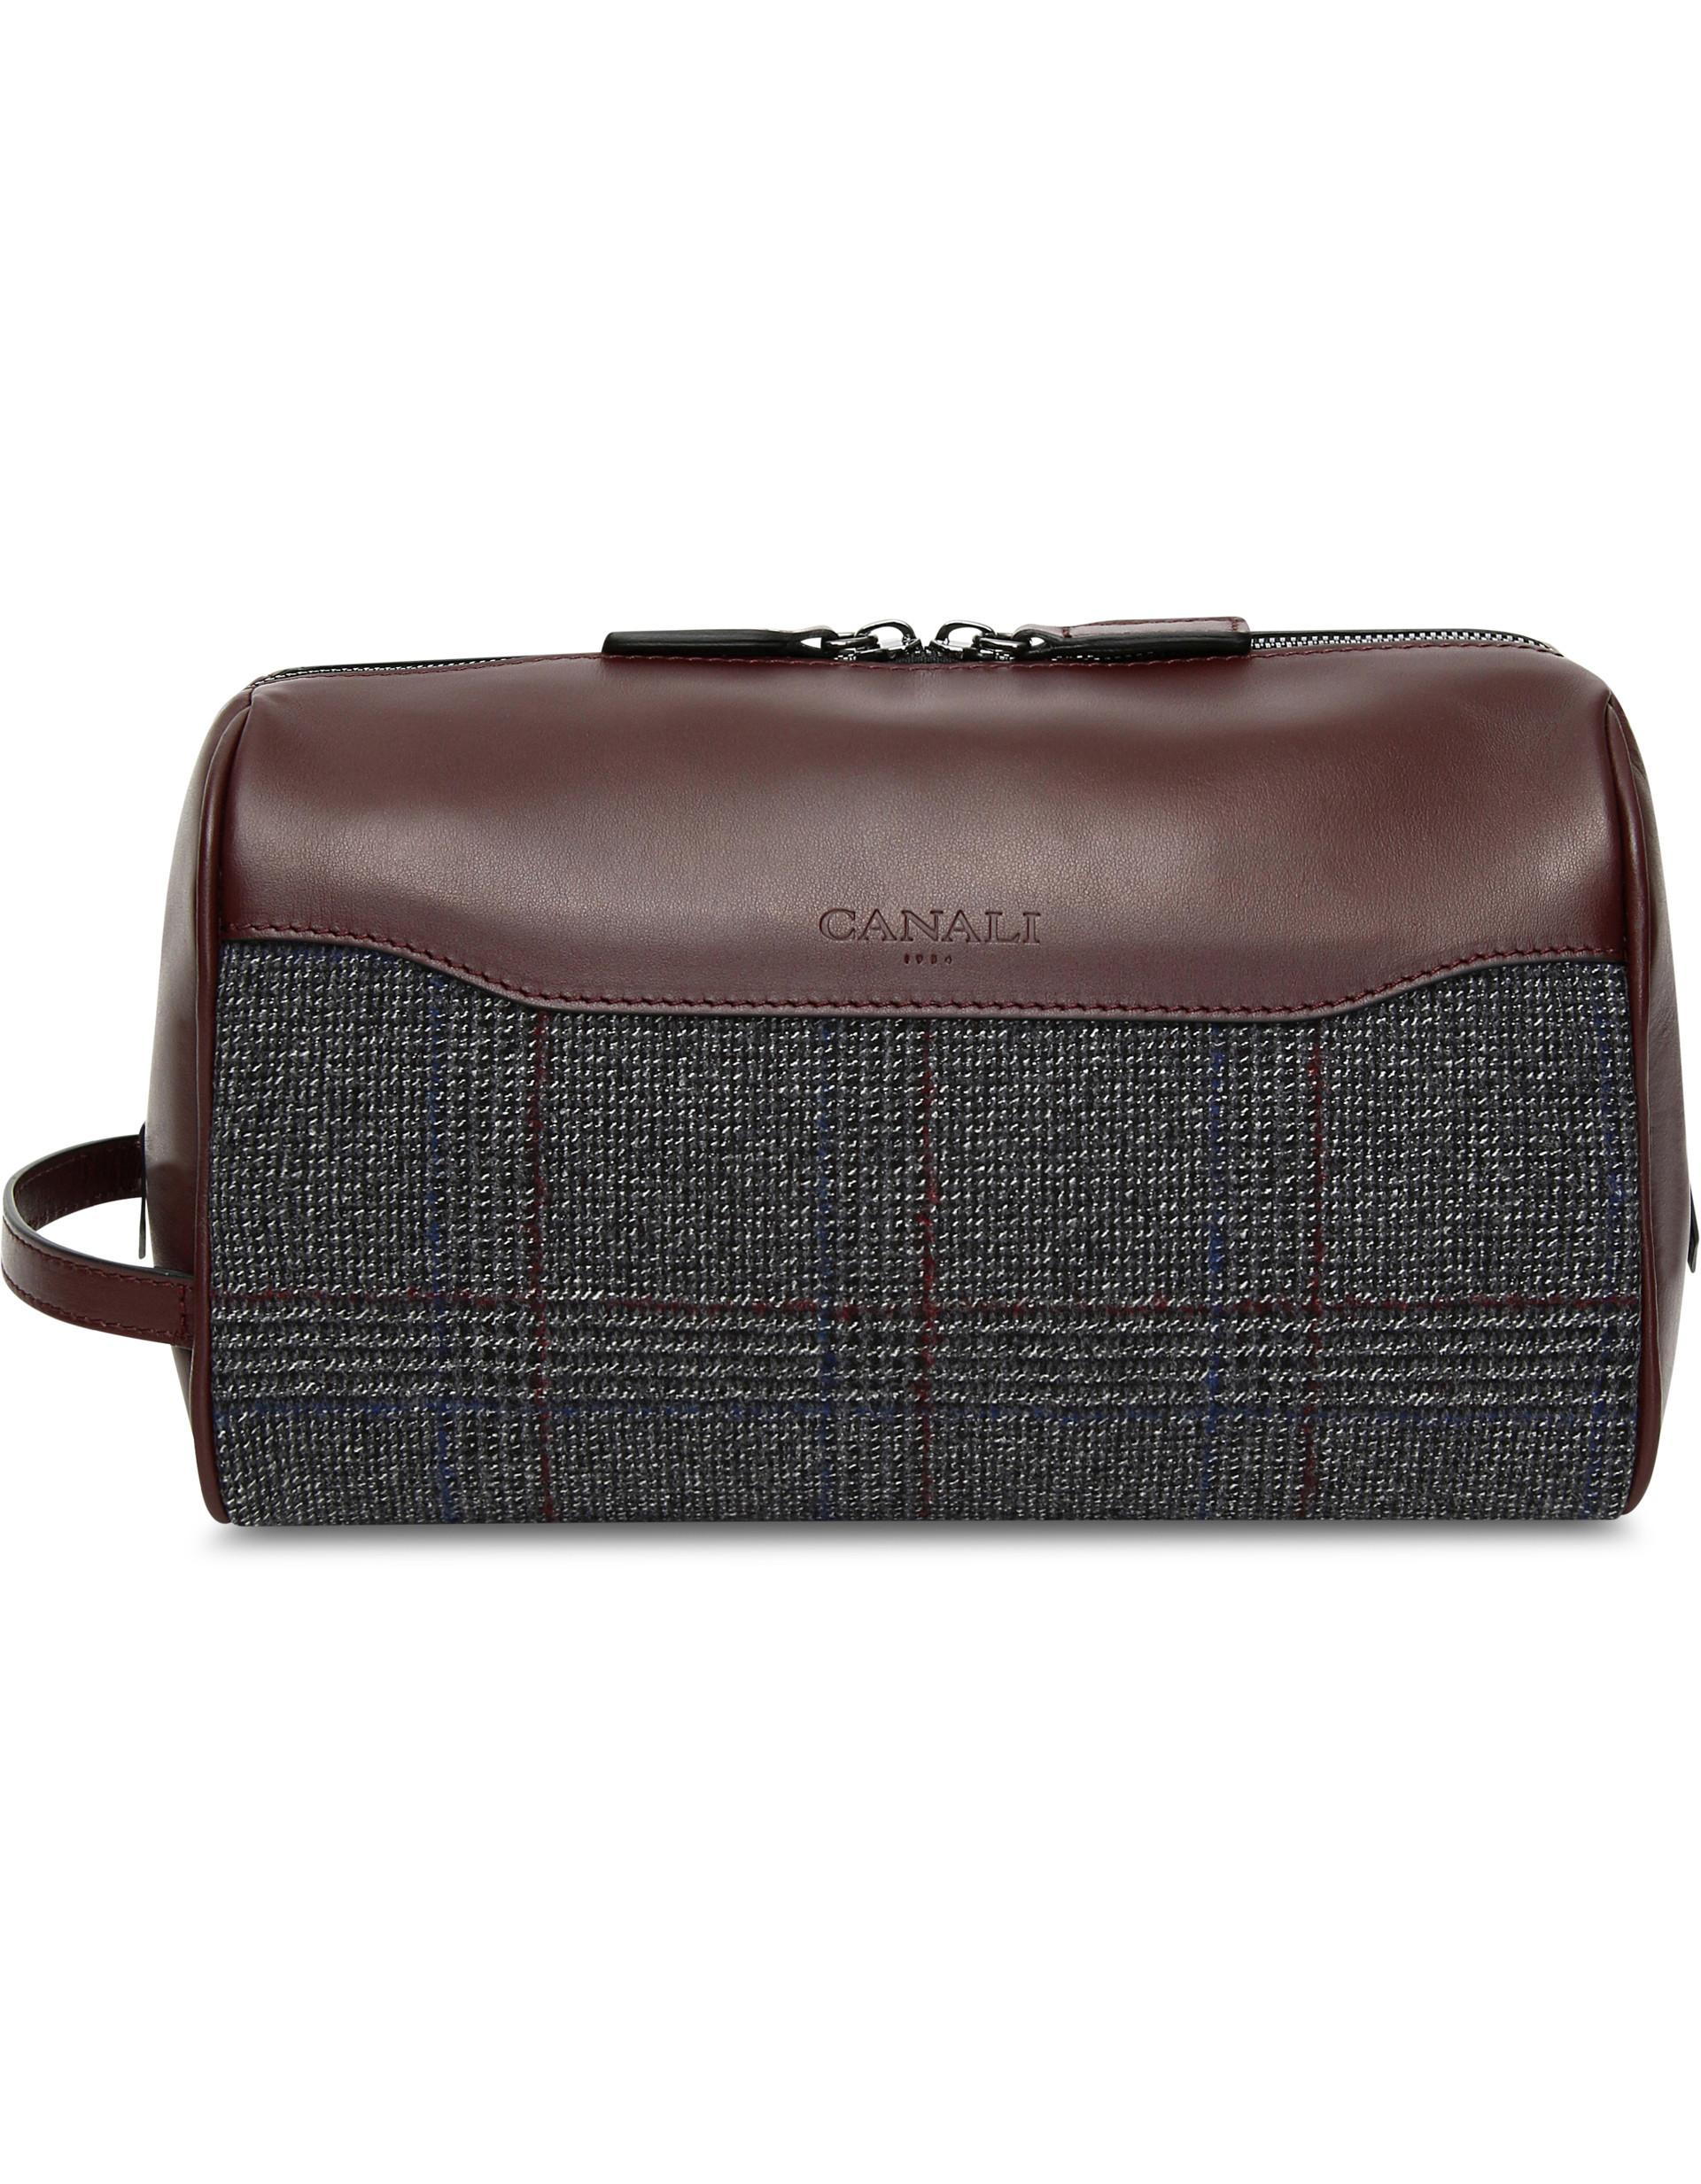 3c8c72d3c71 ... Toiletry Travel Bag With Checked Wool Insert for Men - Lyst. View  fullscreen